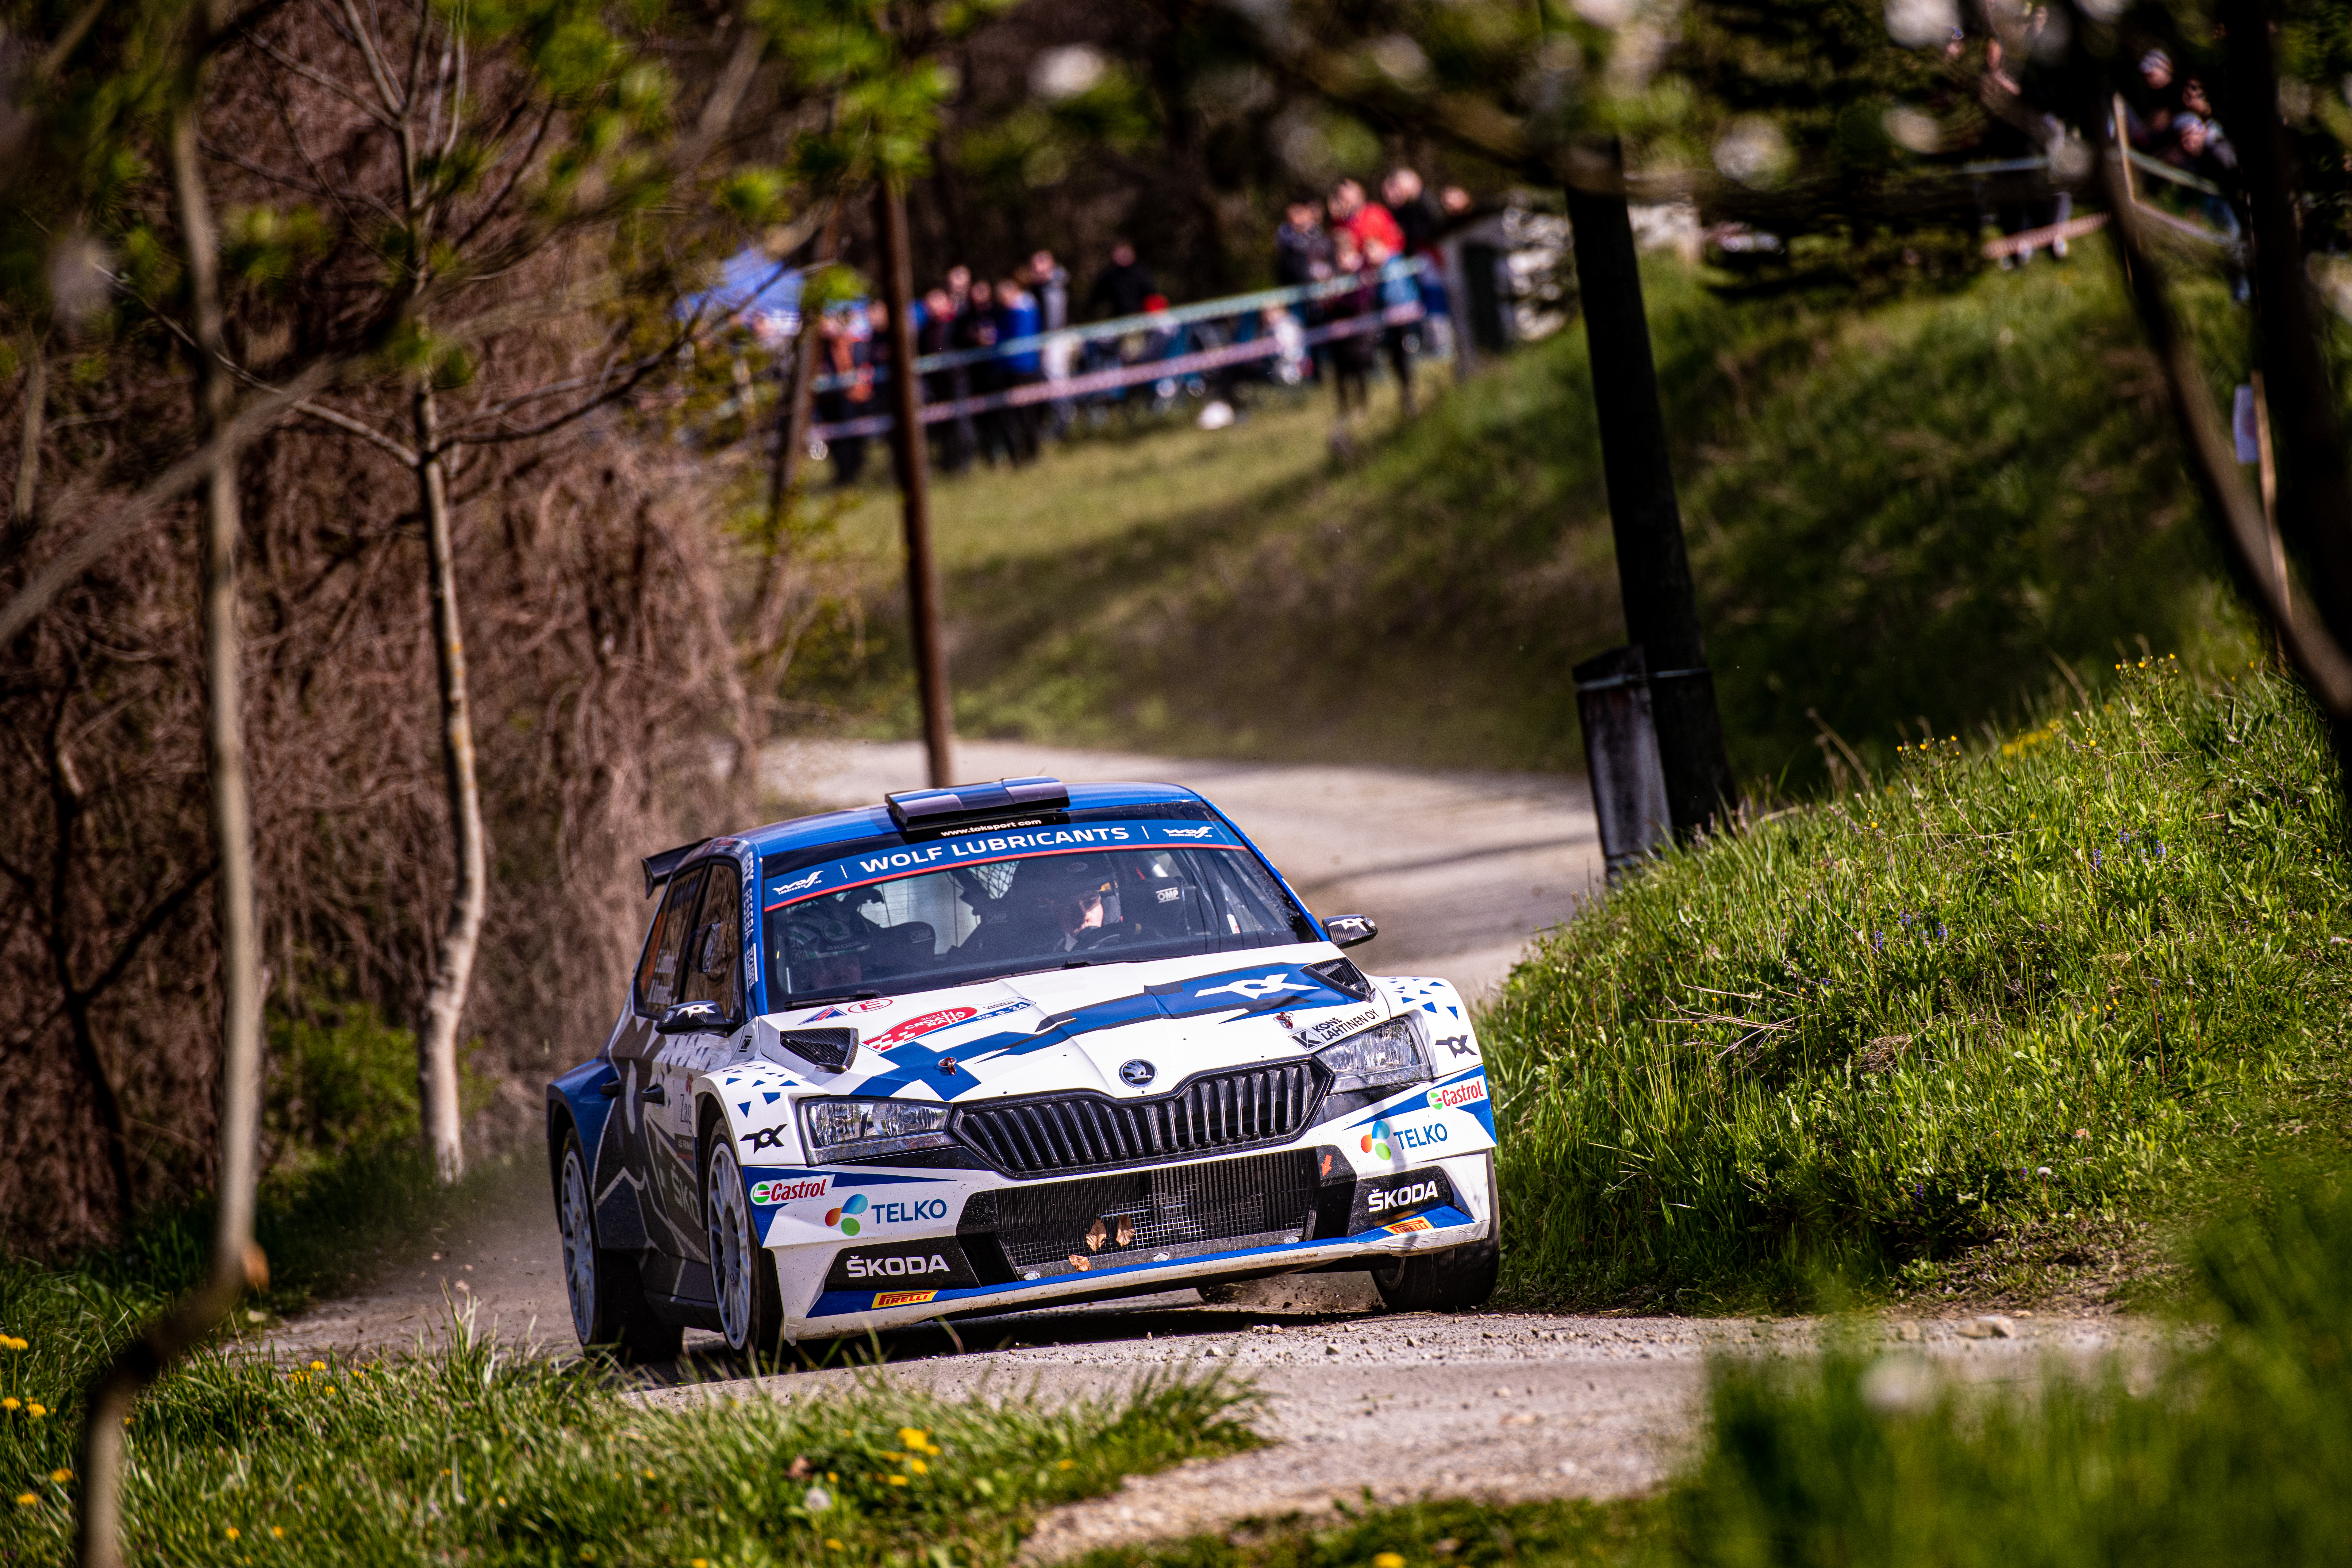 Rally Croatia: SKODA crews score 1-2 in WRC3, Andreas Mikkelsen defends WRC2 overall lead - Image 2